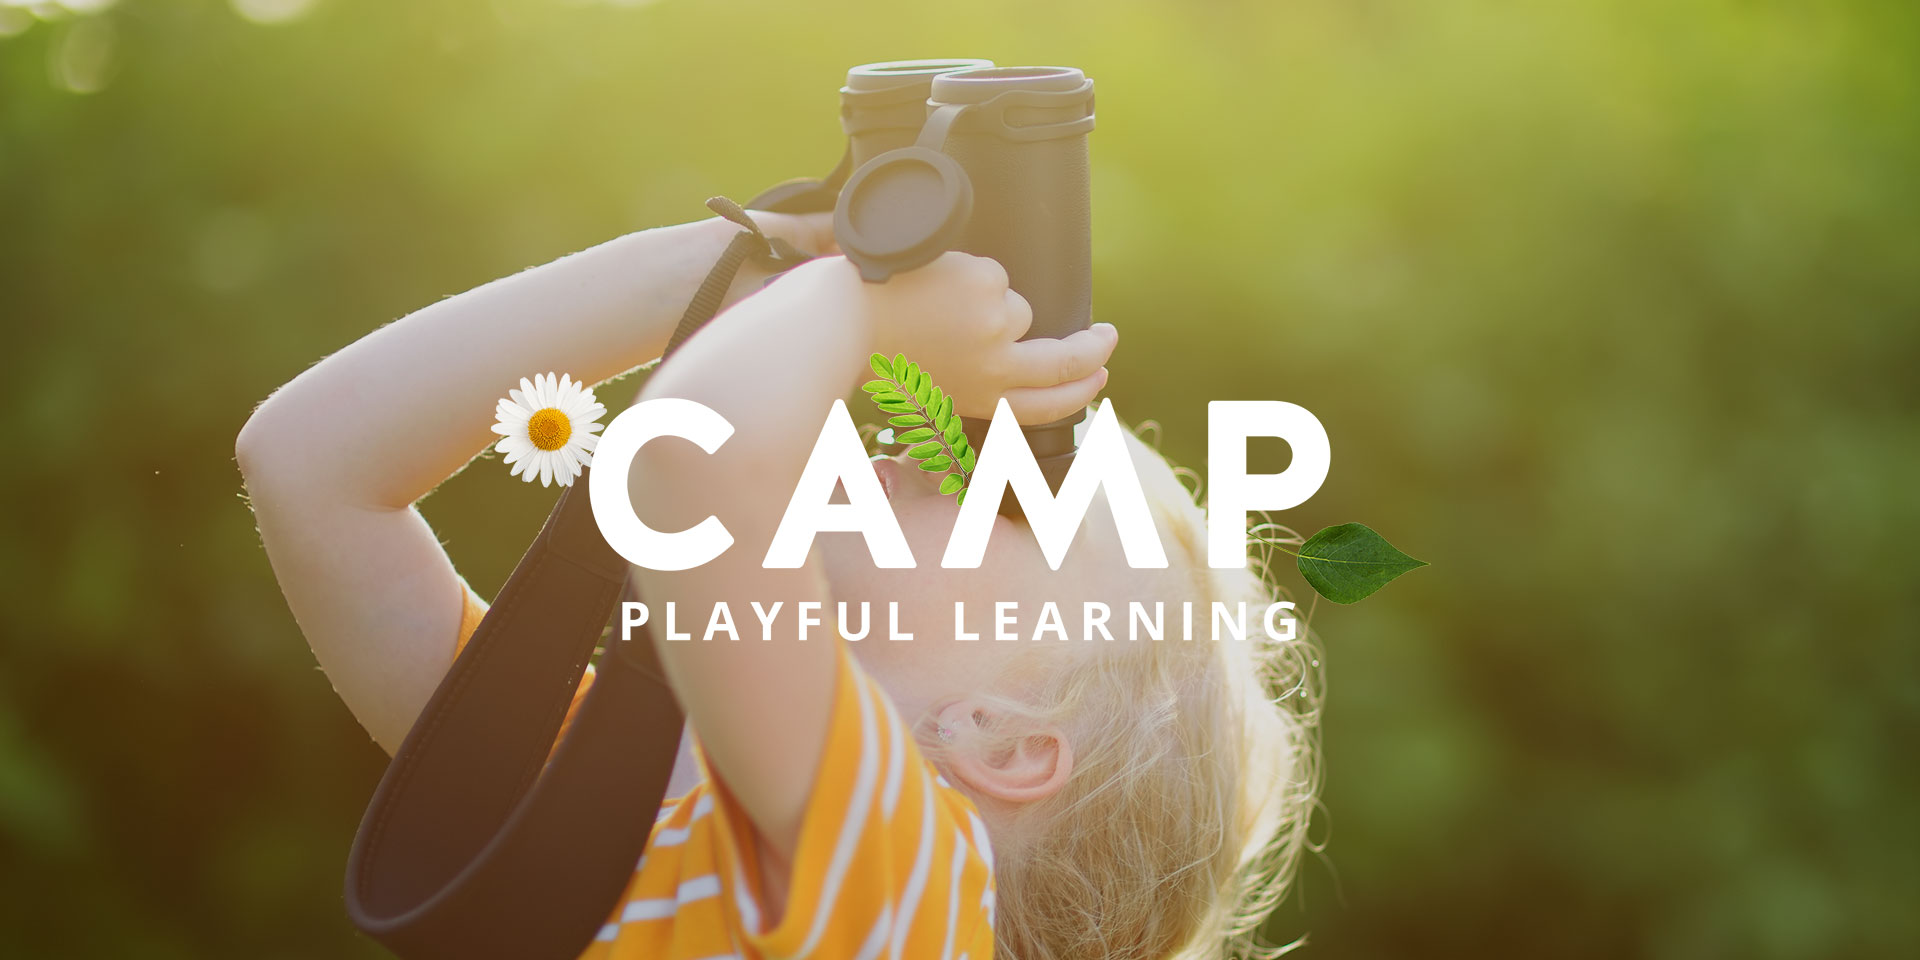 Camp Playful Learning